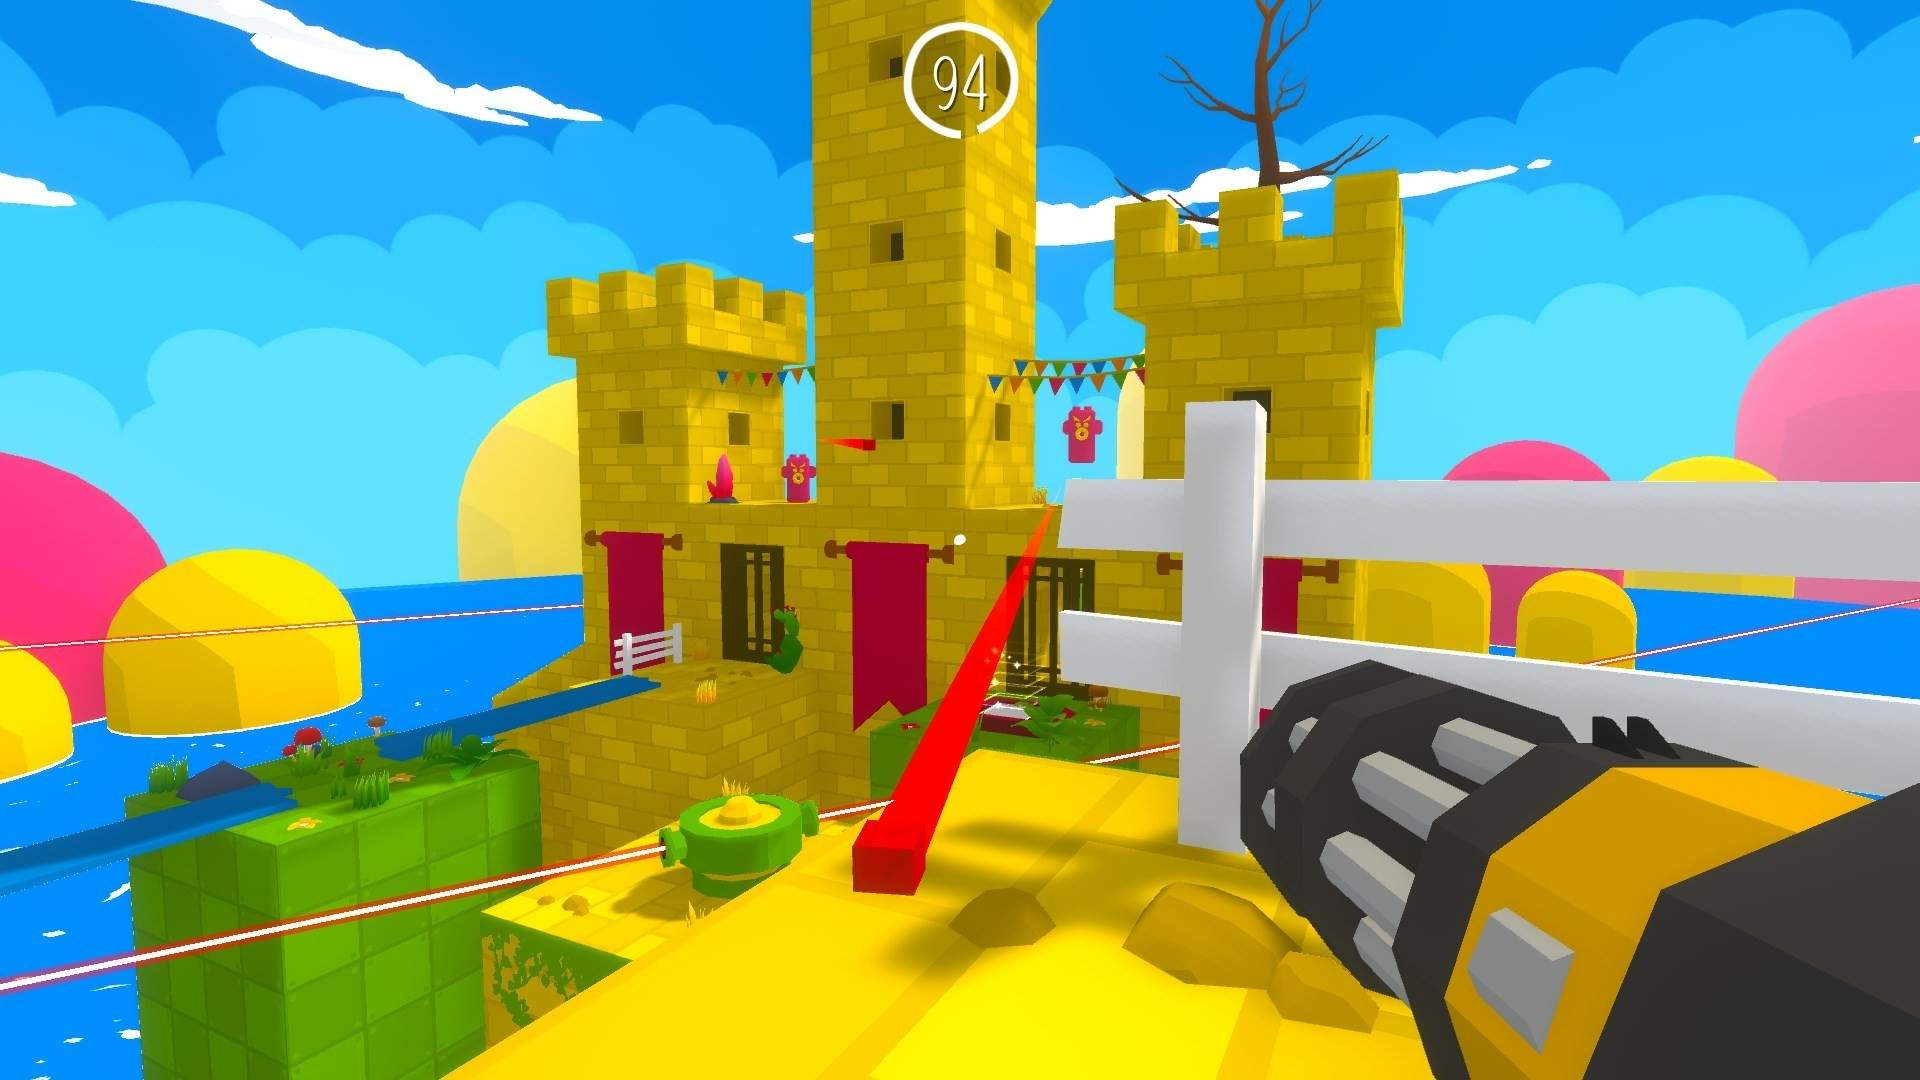 Bouncy Bullets 2 – October 8 – Optimized for Xbox Series X|S